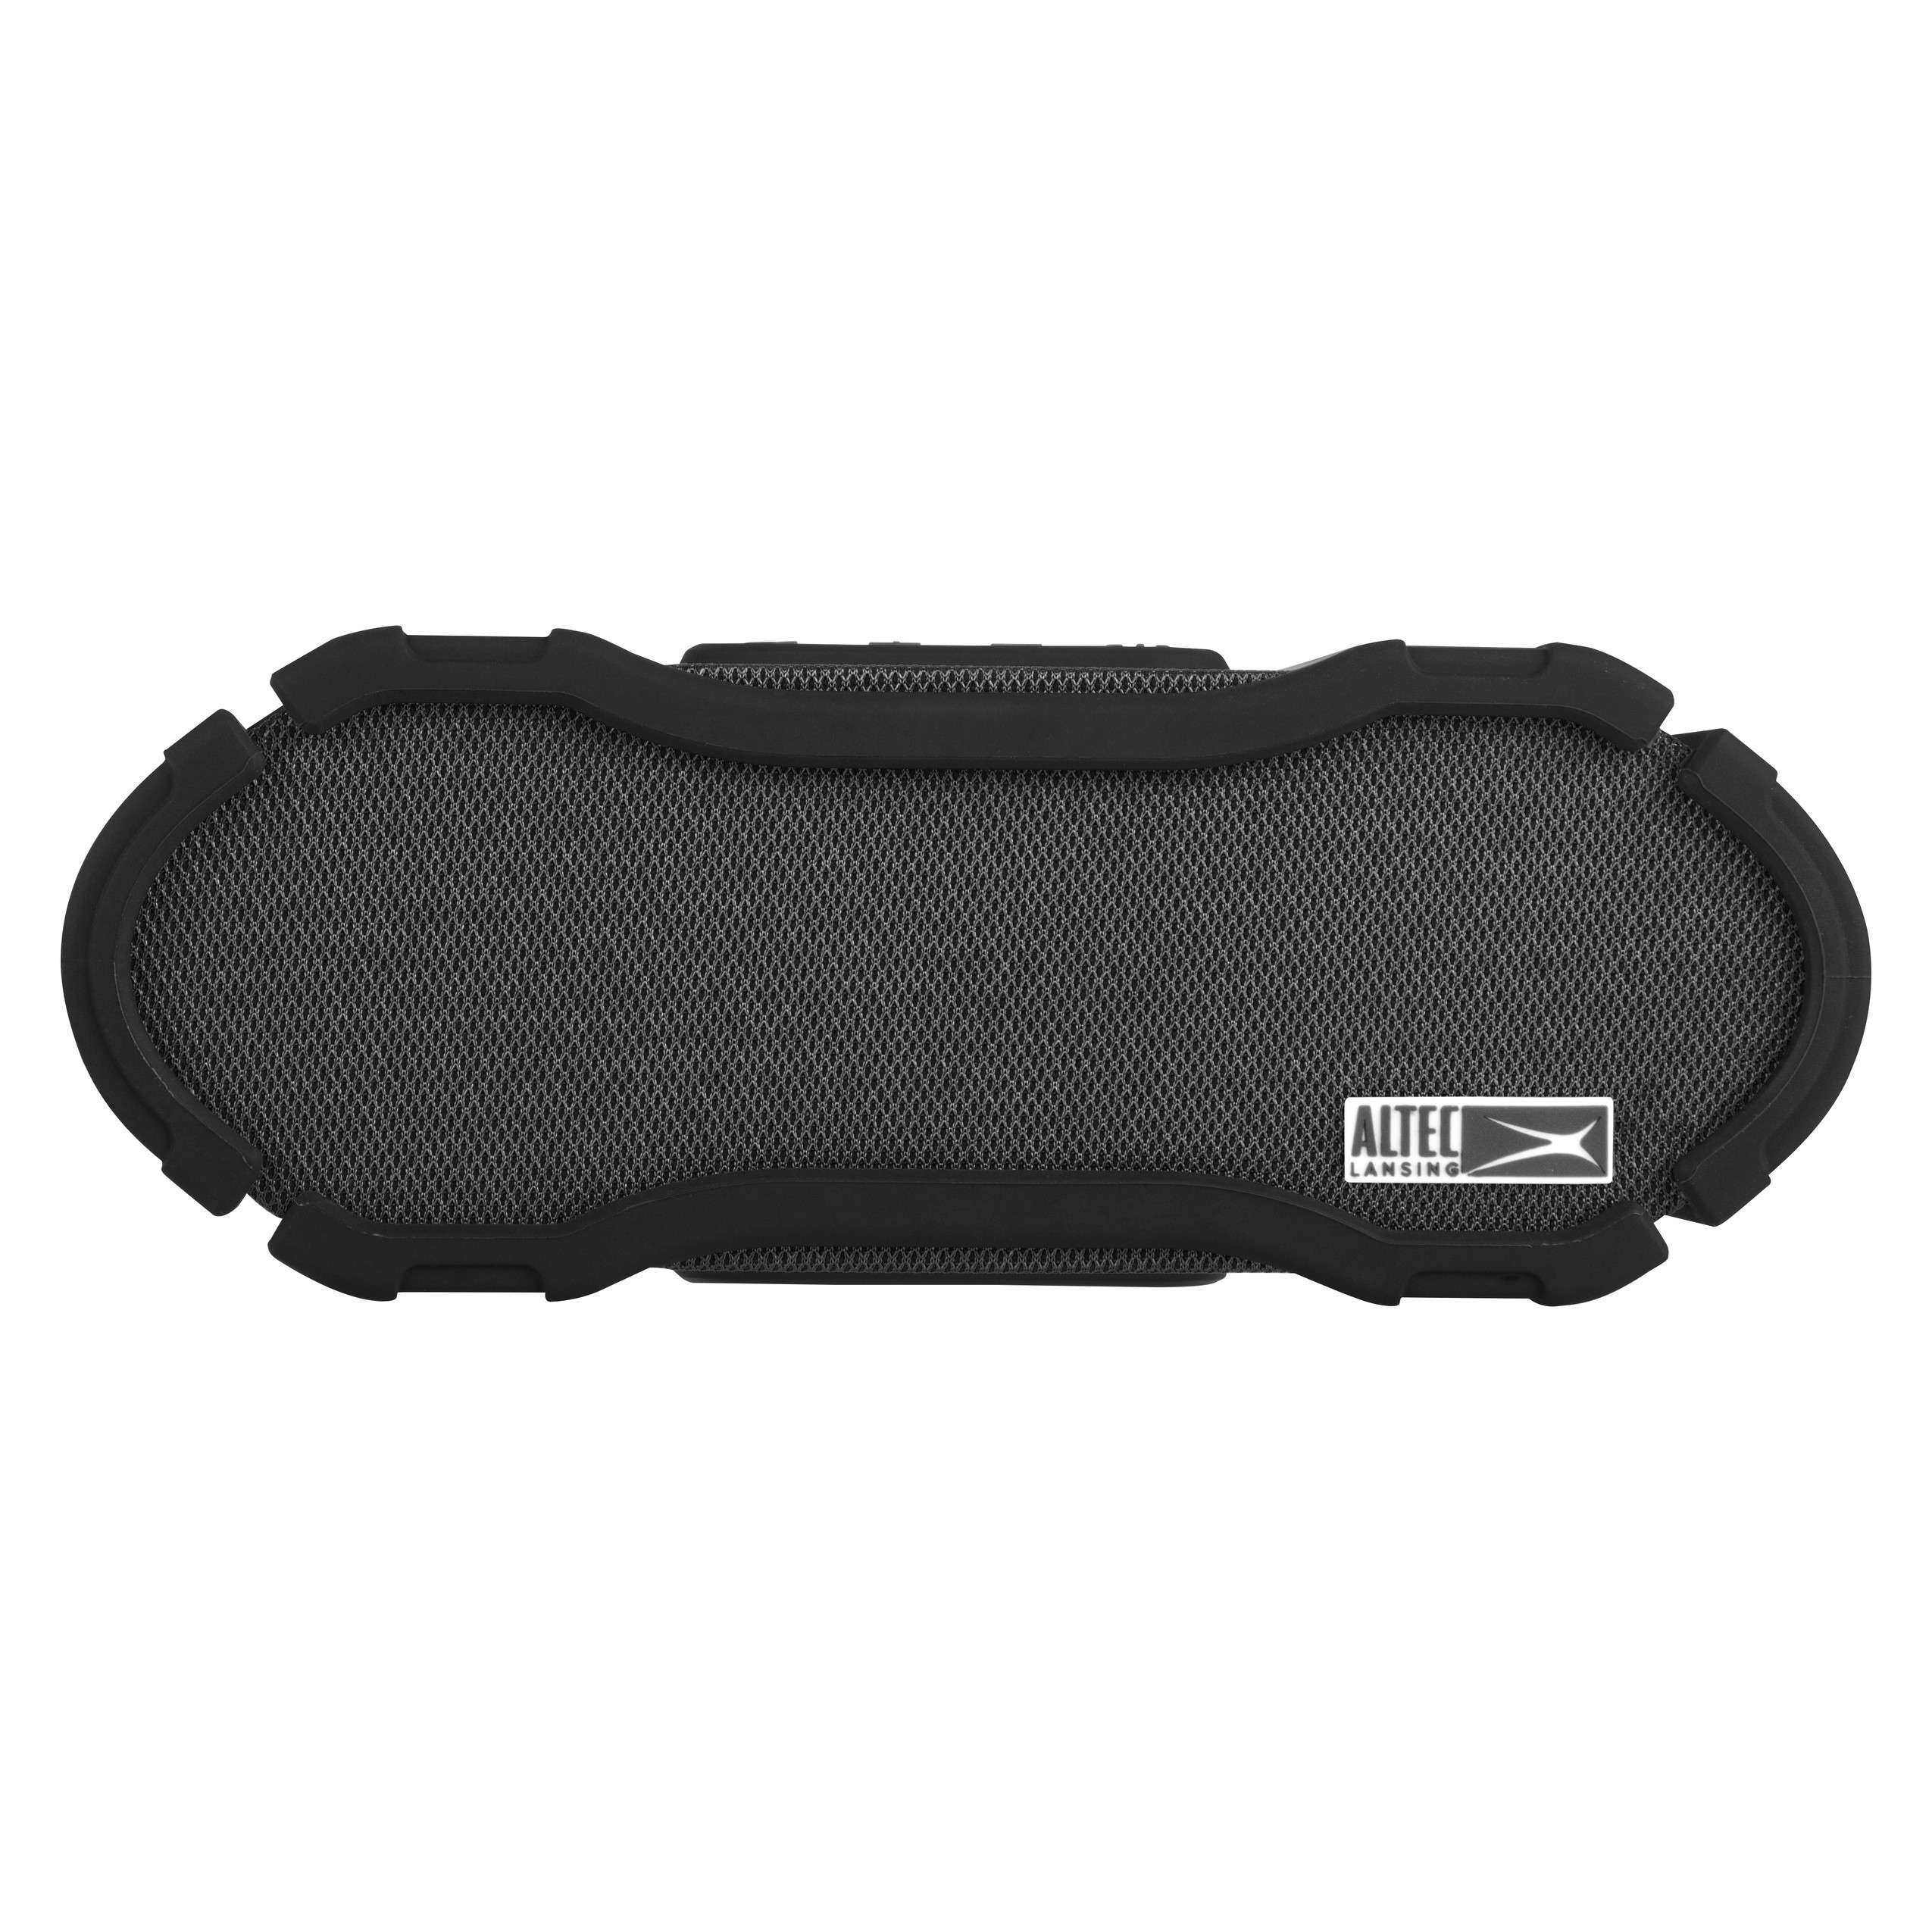 Altec Lansing Omni Jacket iMW678-BLK Speaker Black by Altec Lancing